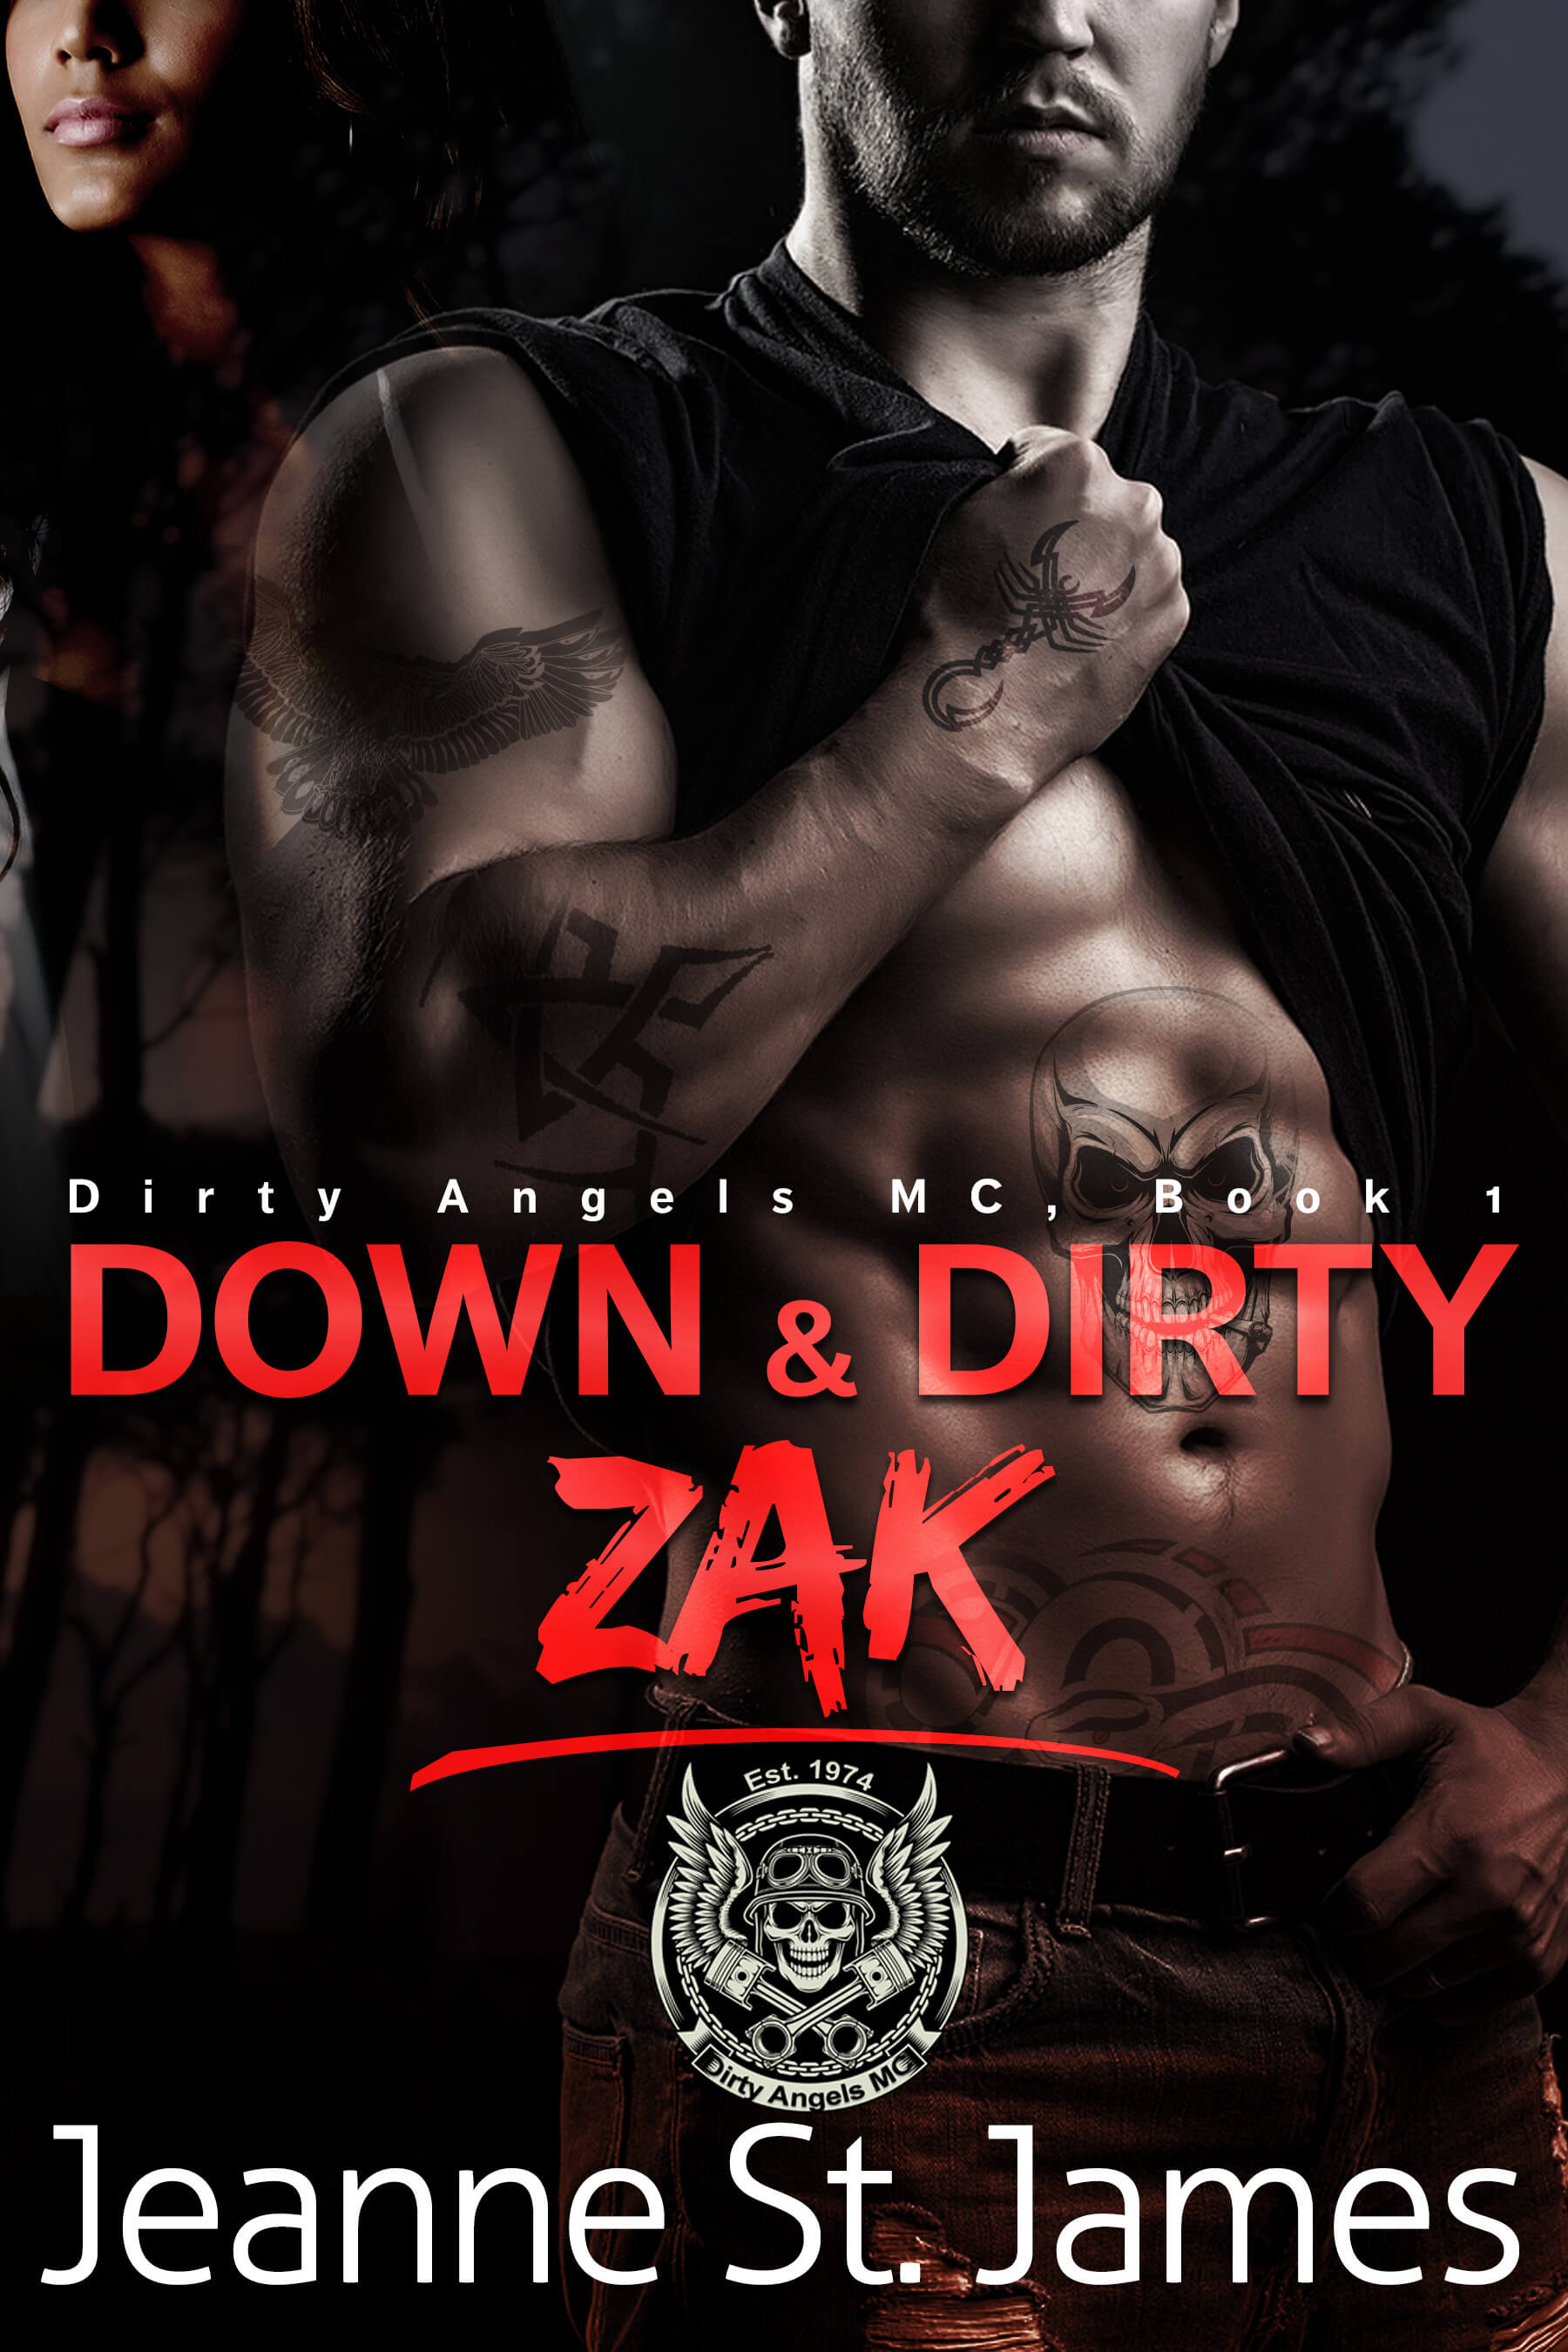 New Release! Jeanne St. James's Down and Dirty – Zak